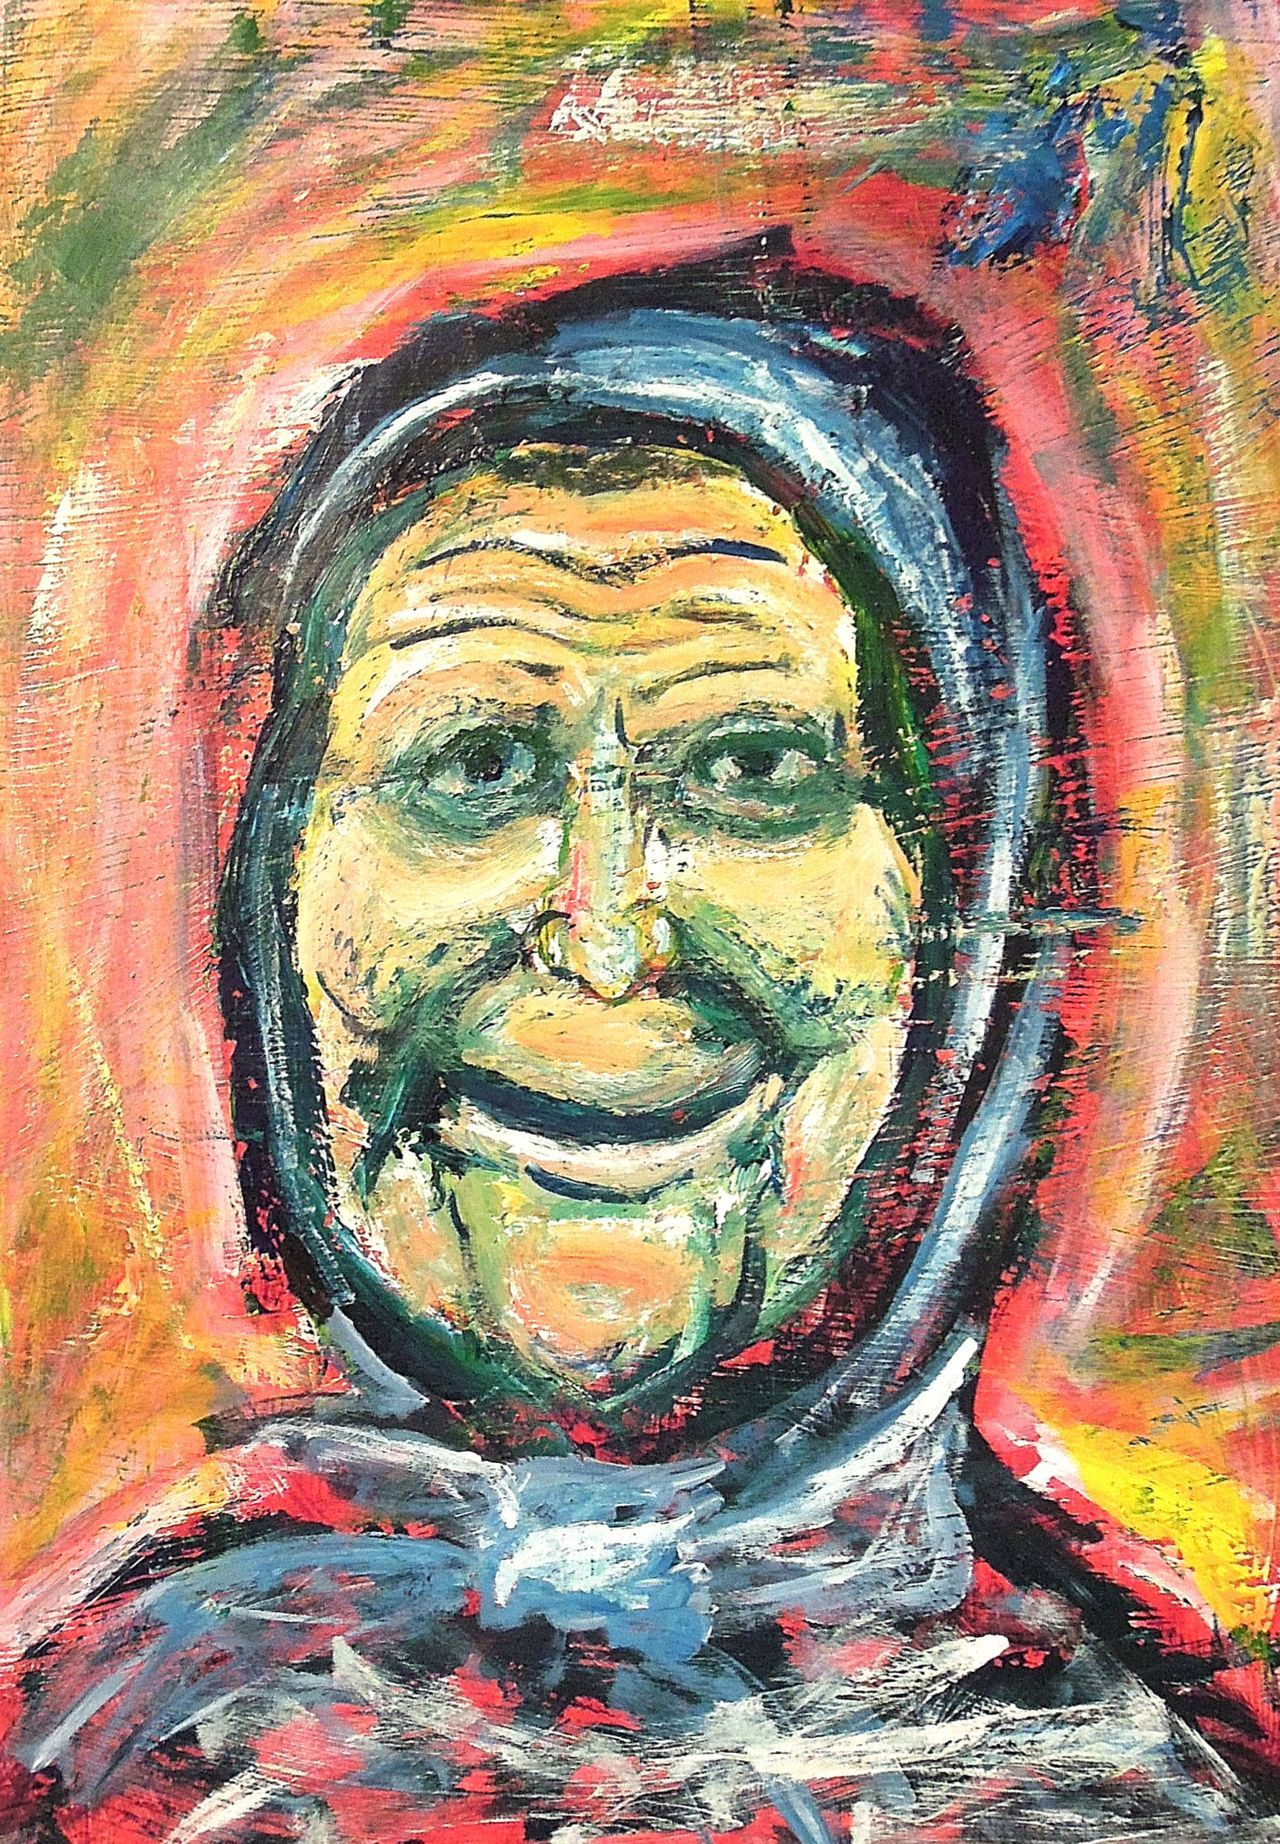 "Old Woman22"" x 30""Acrylic on paper2008"